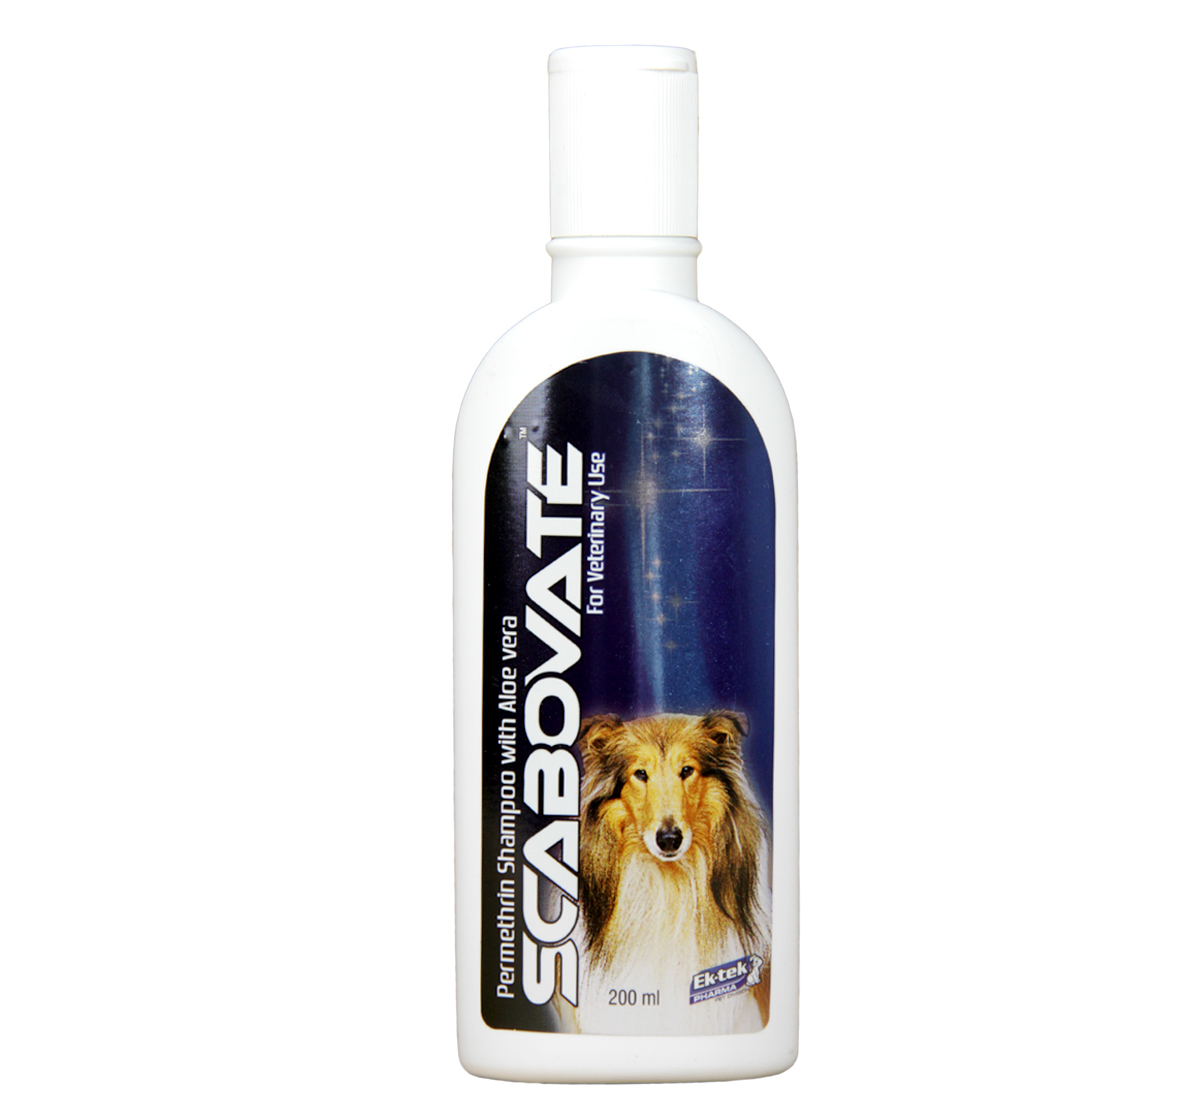 Scabovate Anti Tick and Flea Shampoo For Dogs - 200 ml